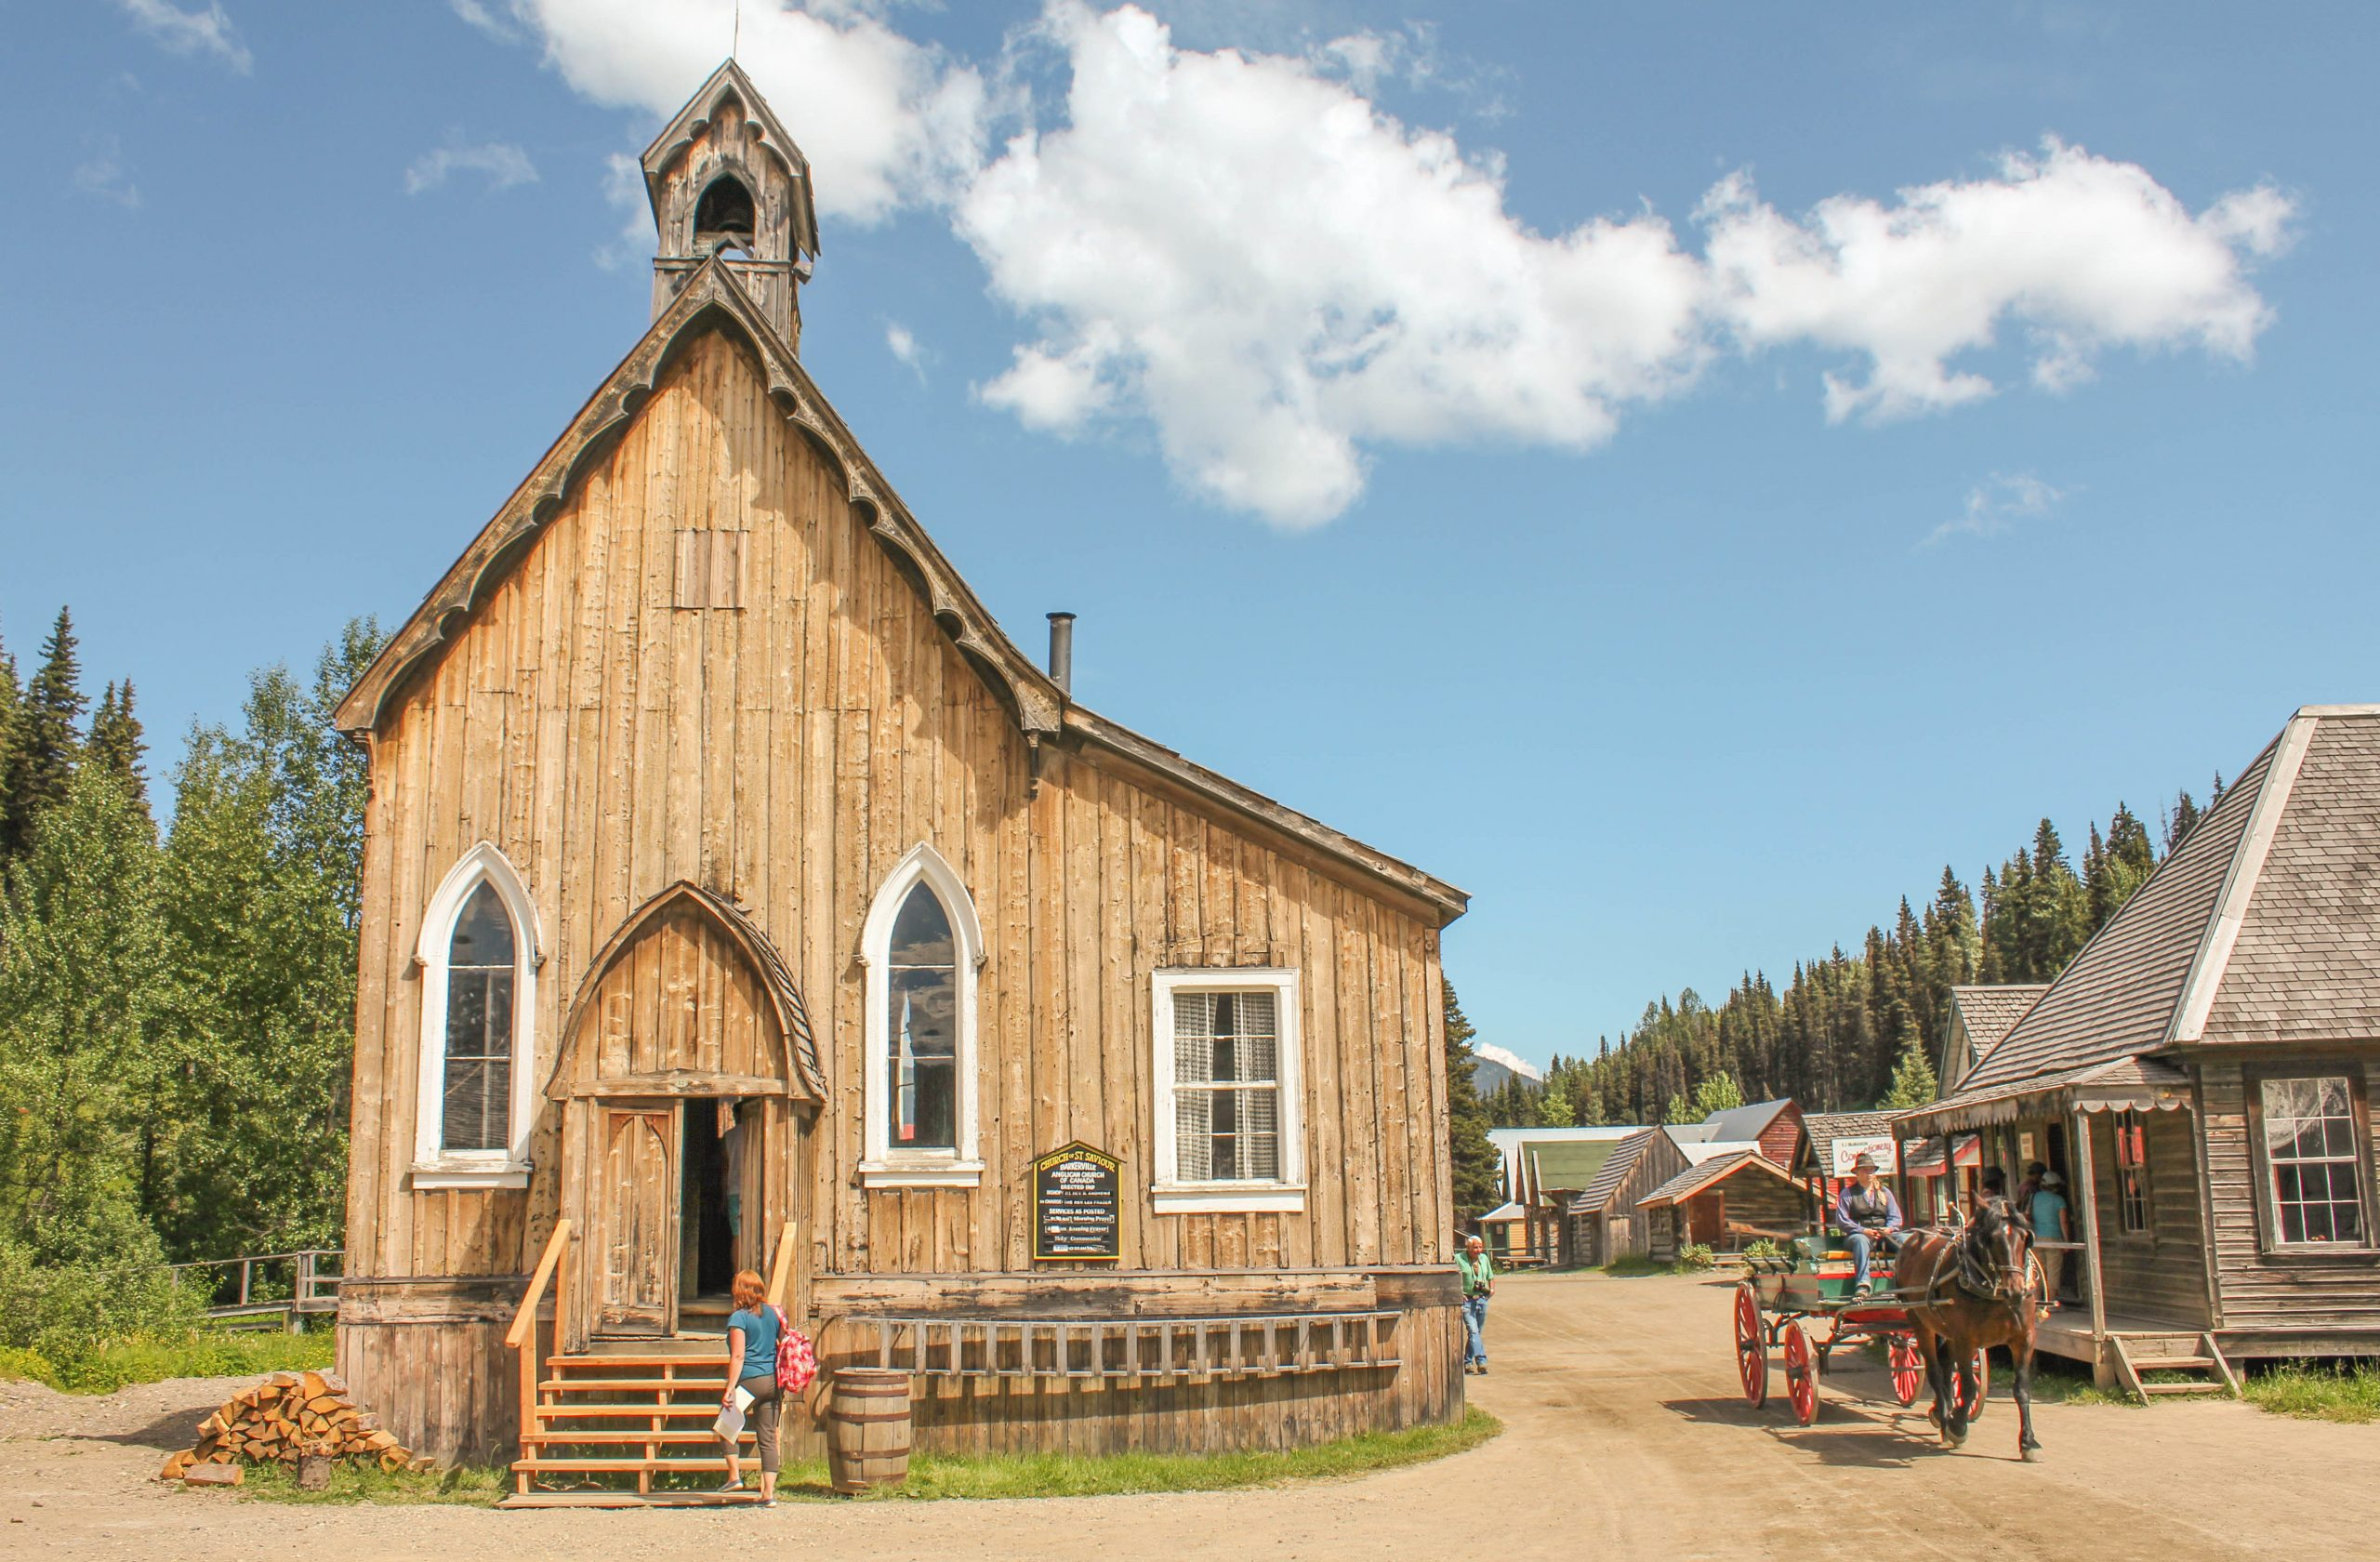 Historic Barkerville's St. Savior's Church, Barkerville, BC